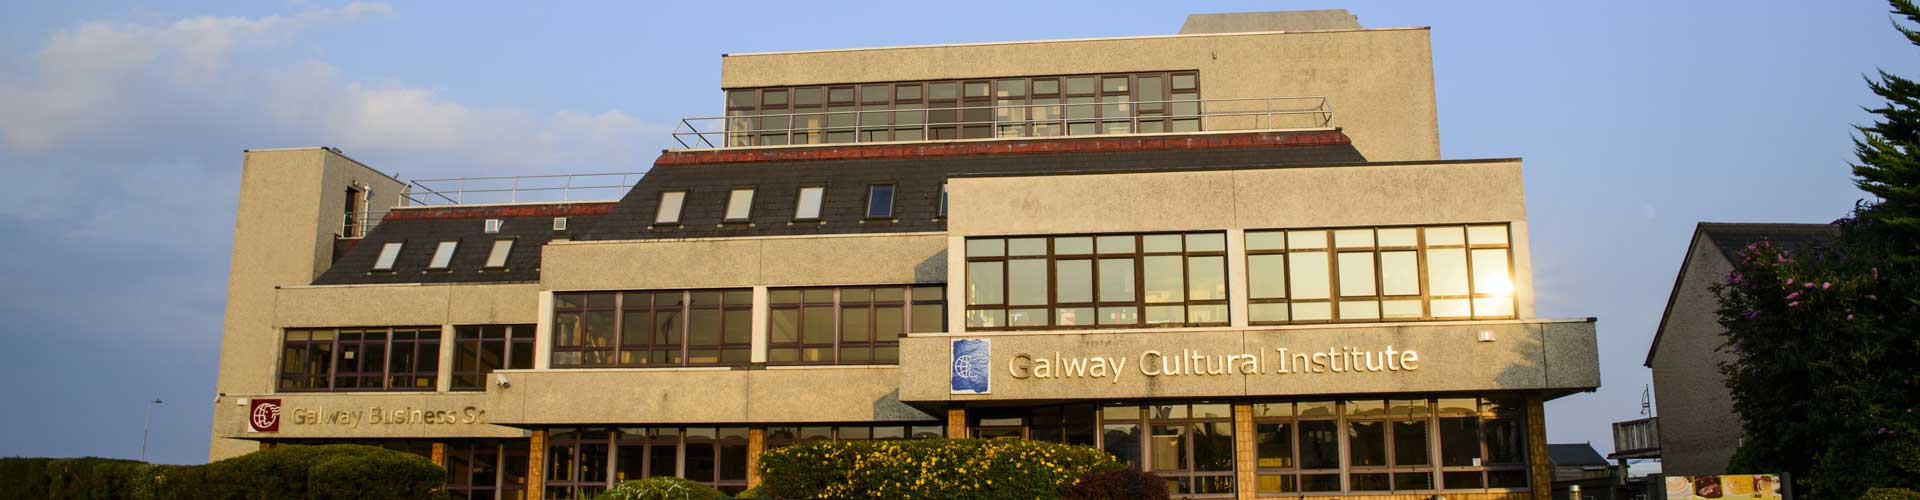 galway-scuola